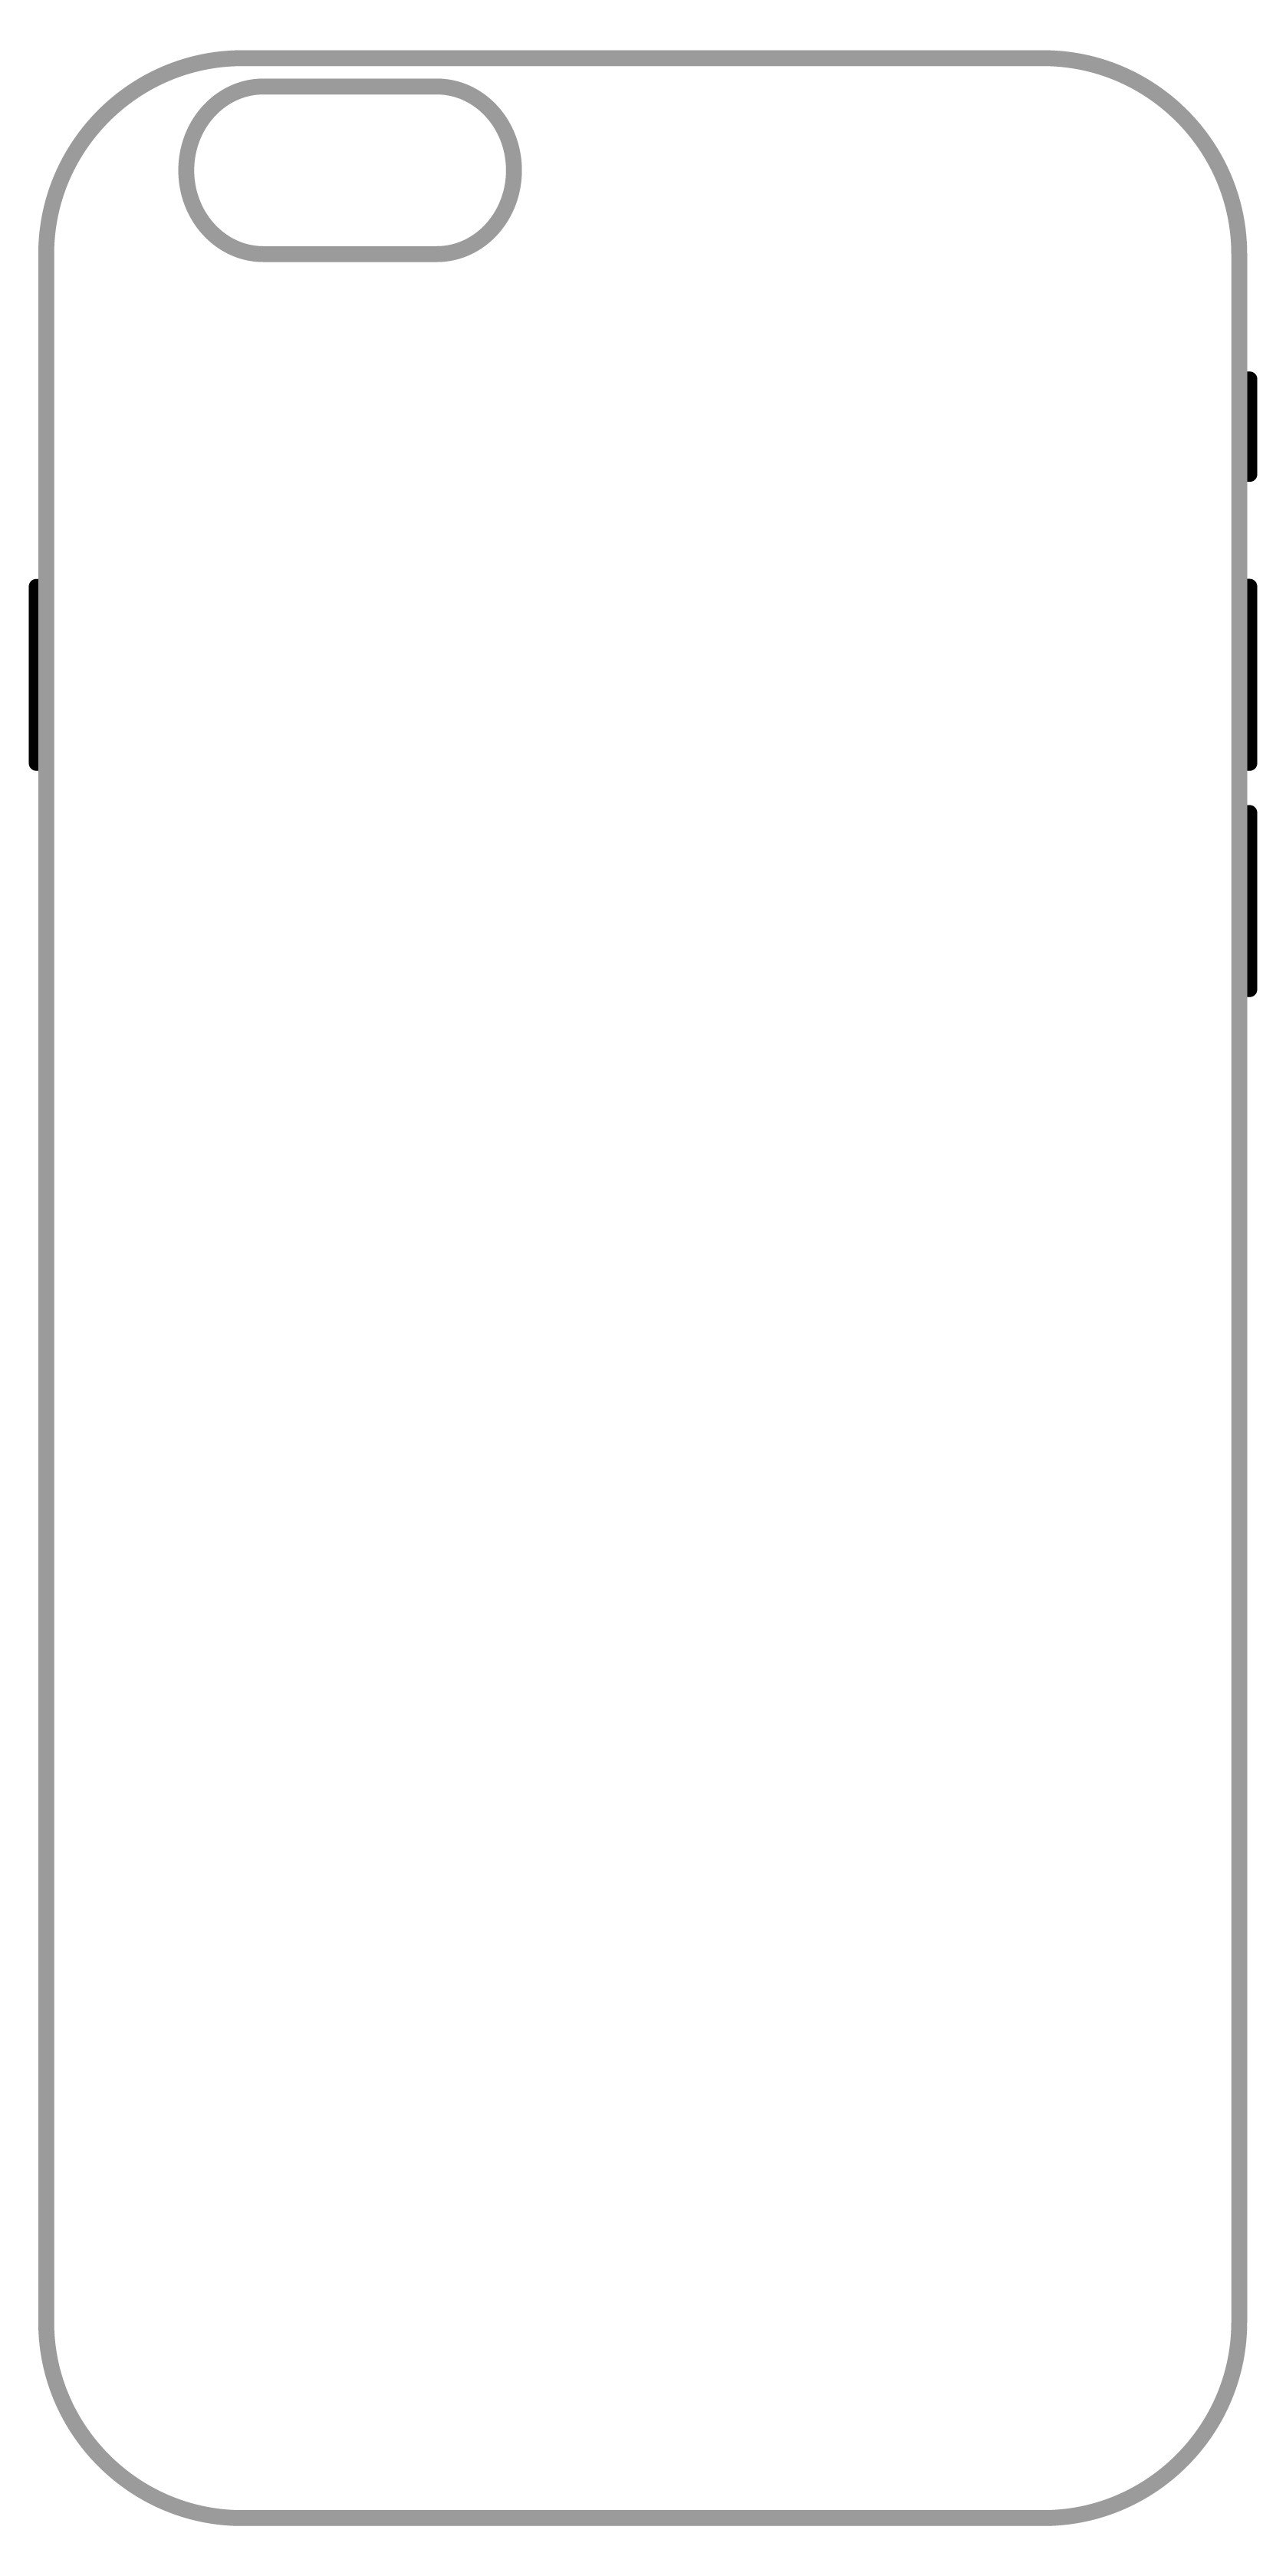 iPhone 6s Case Template Mobile Back Cover Outline – Nishant Arora